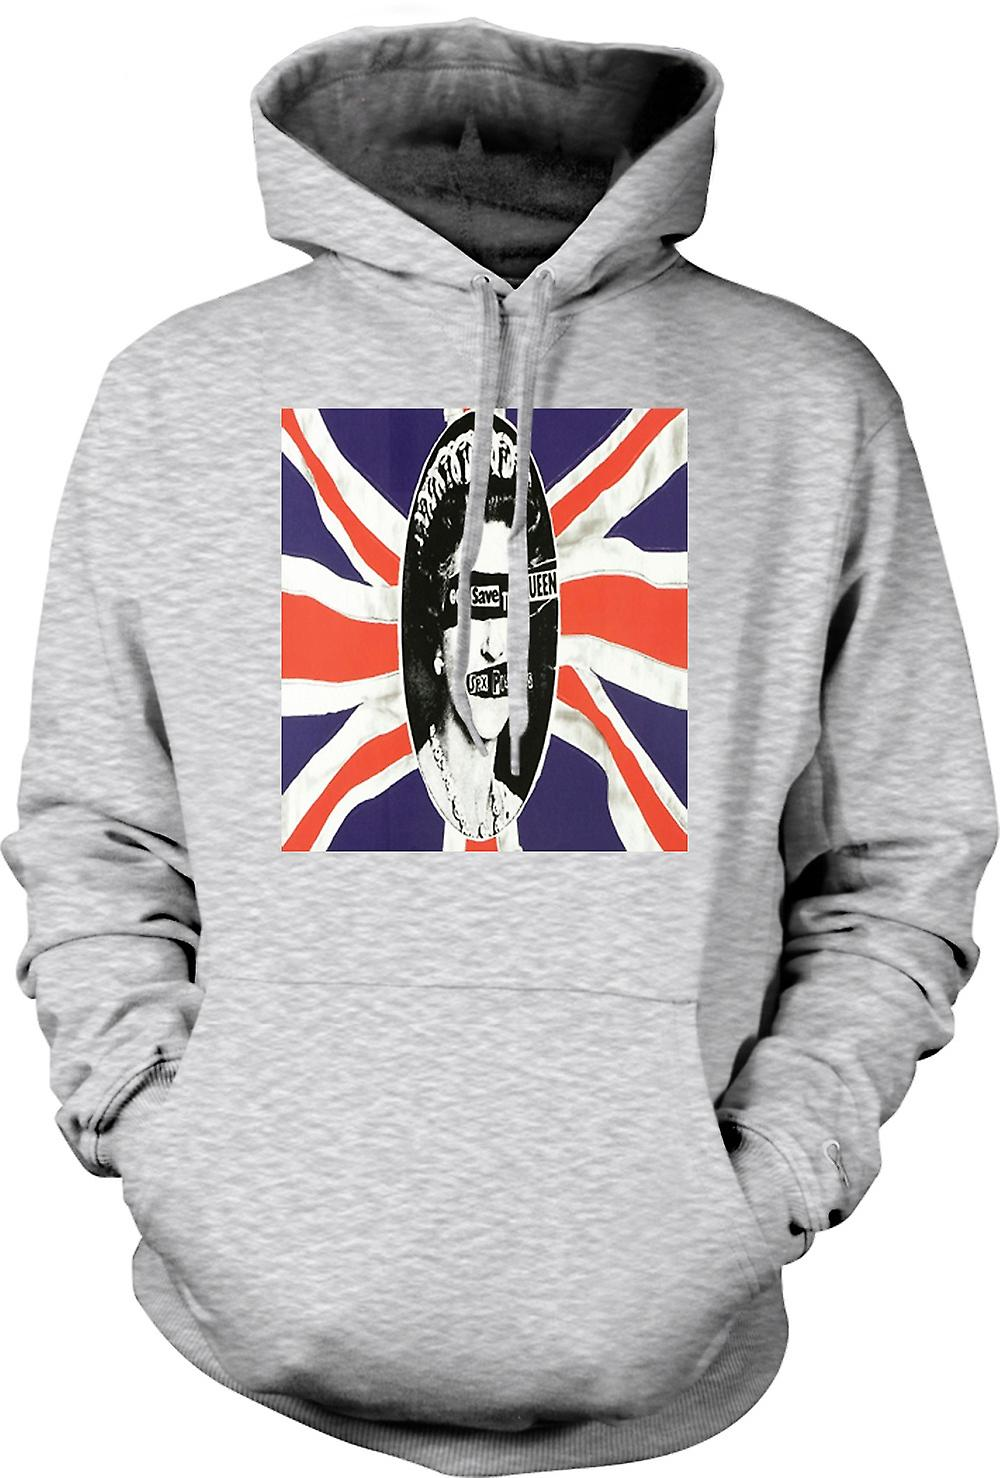 Mens Hoodie - Save the Queen - Punk